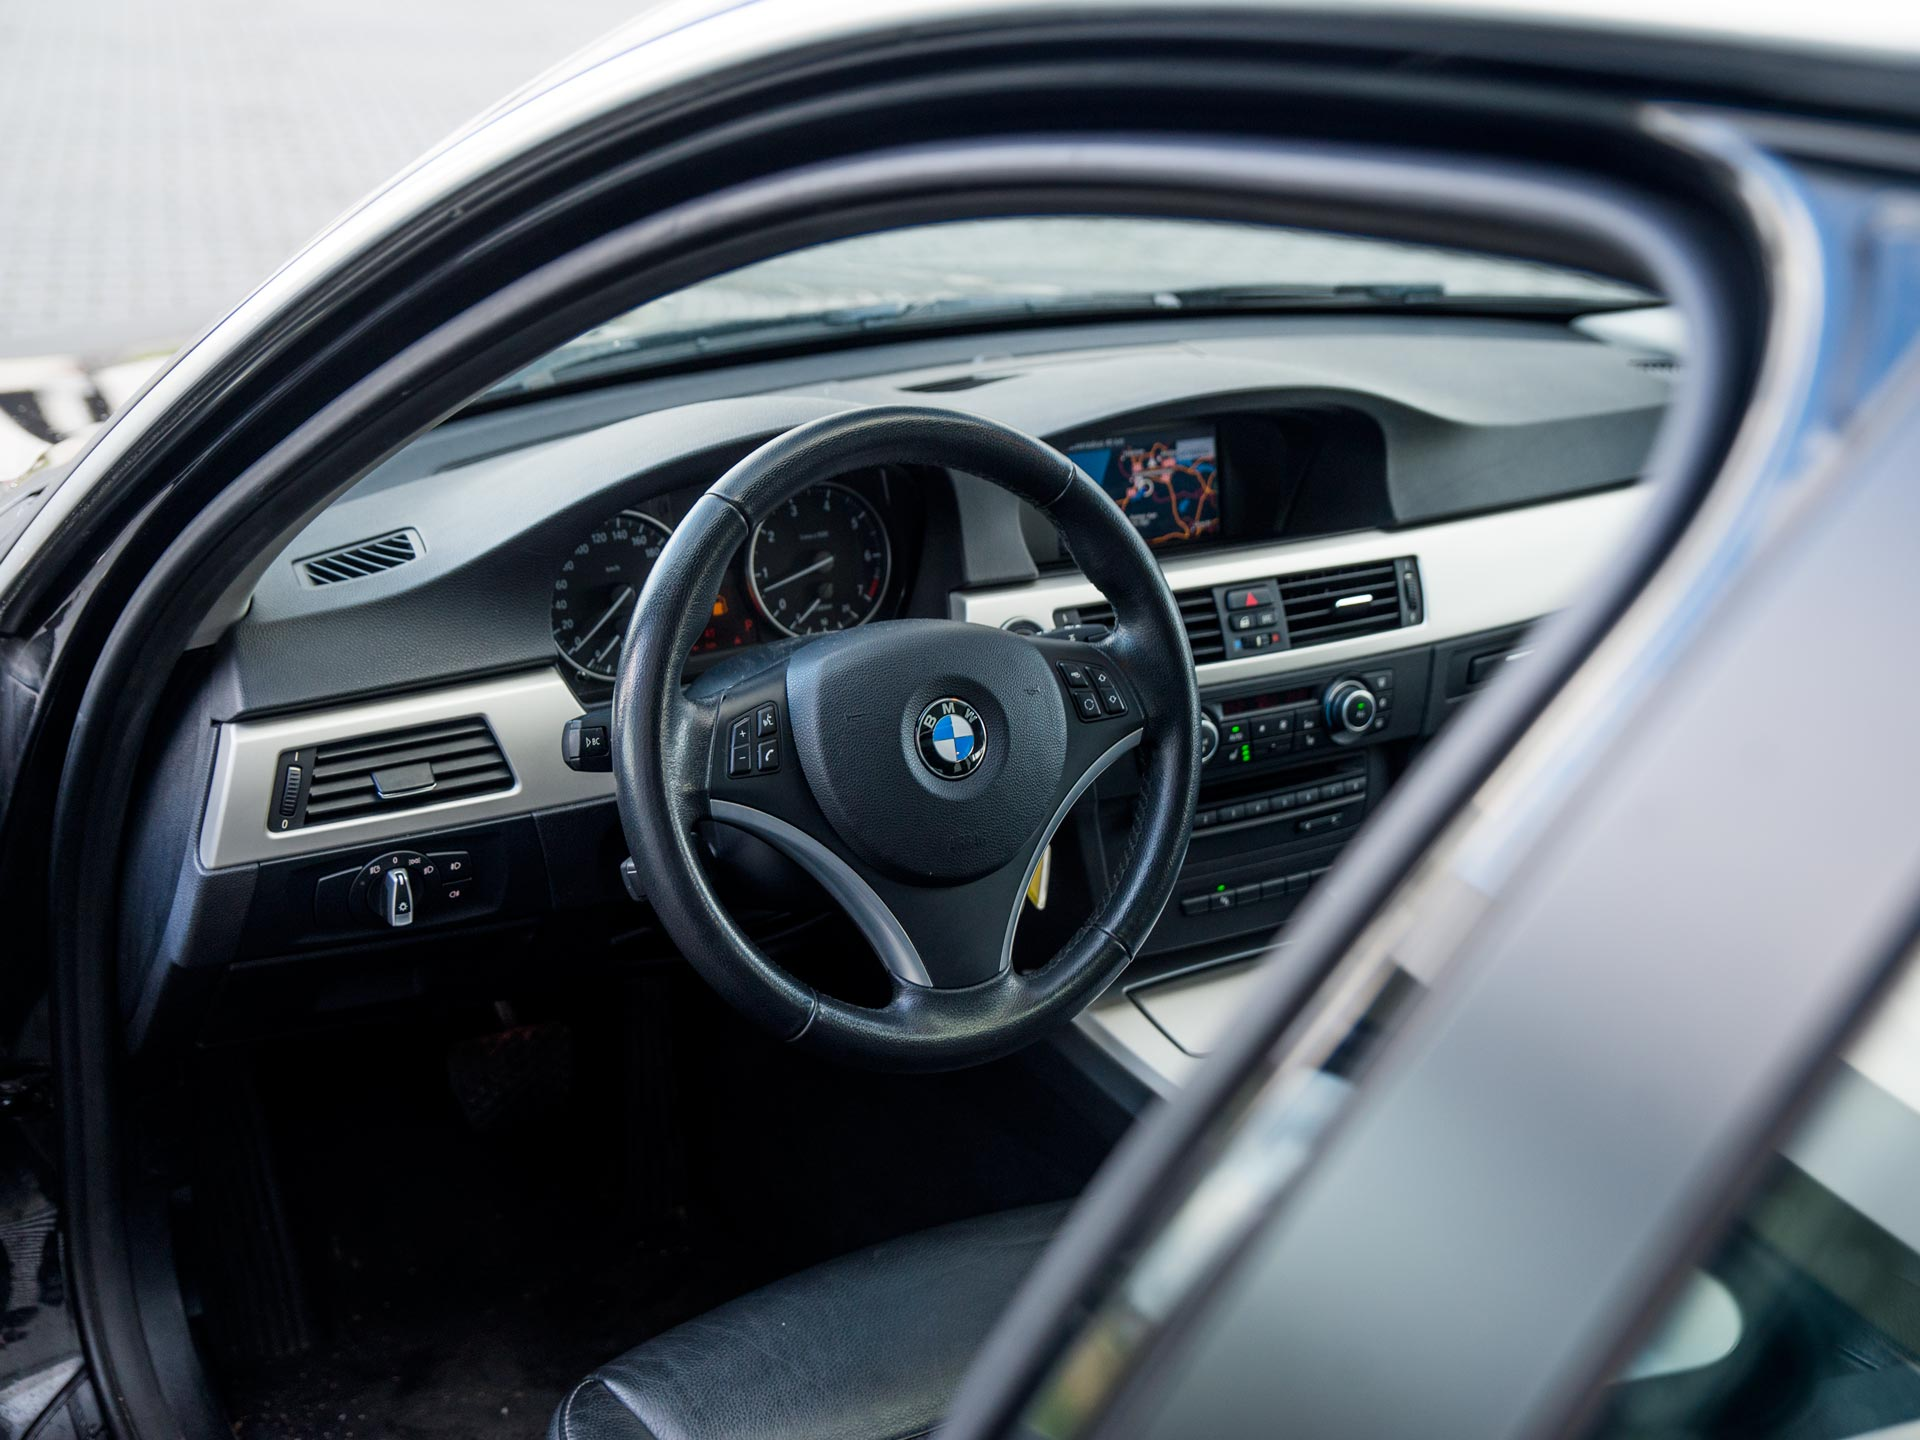 Tweedehands BMW 3 Serie Touring occasion